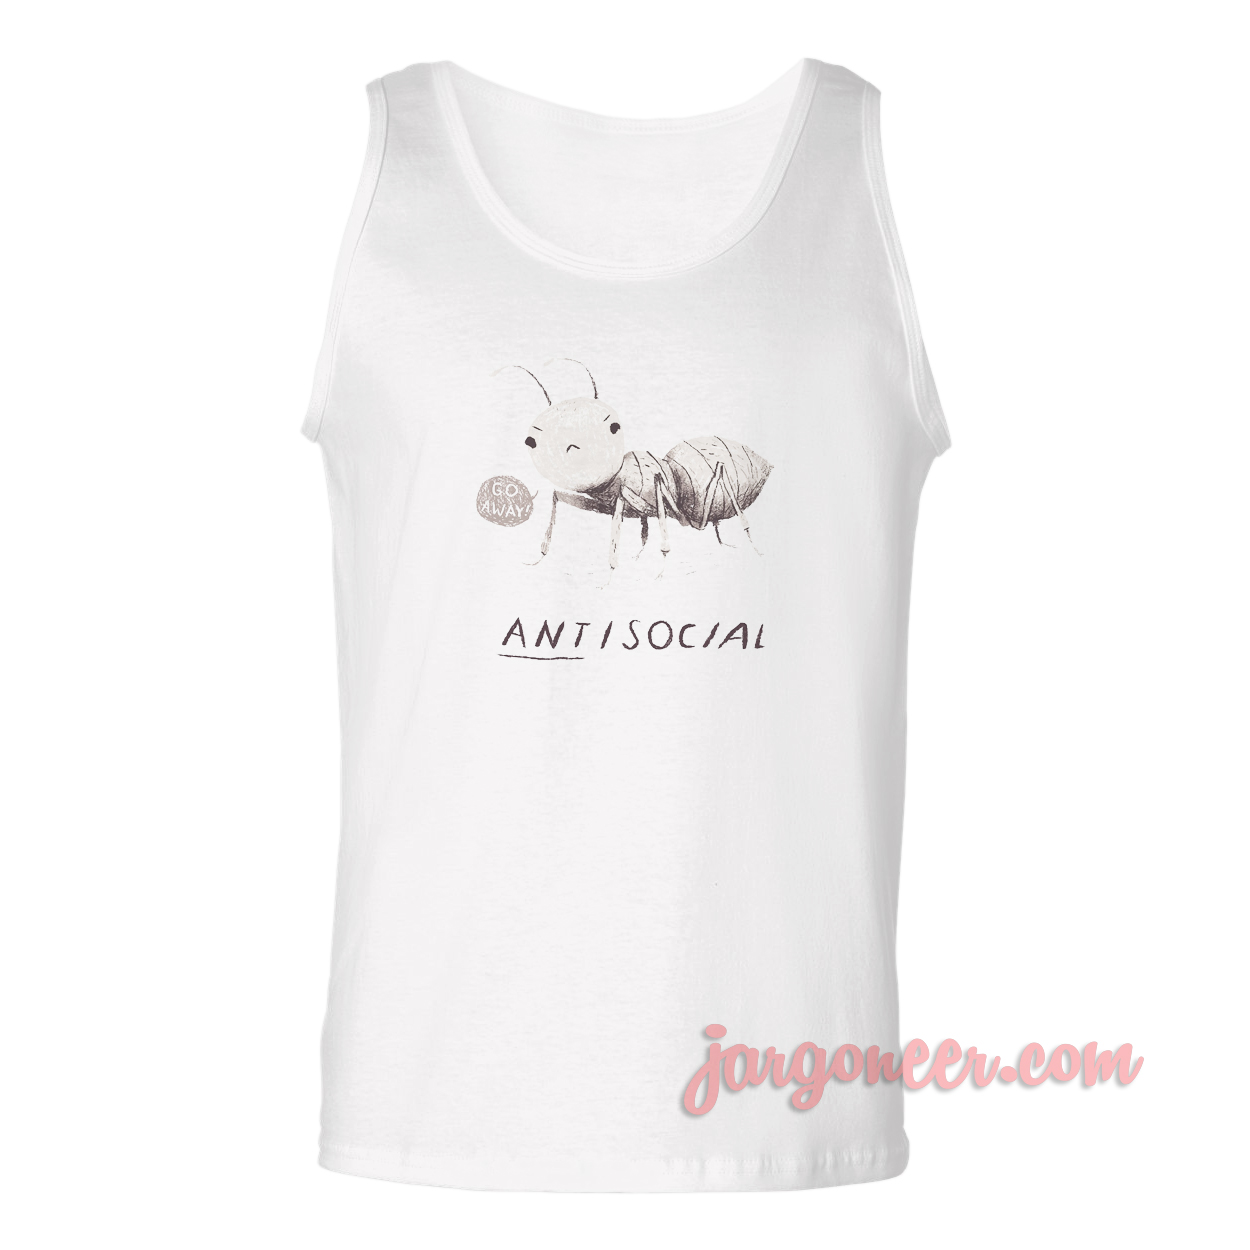 ANTisocial Unisex Adult Tank Top